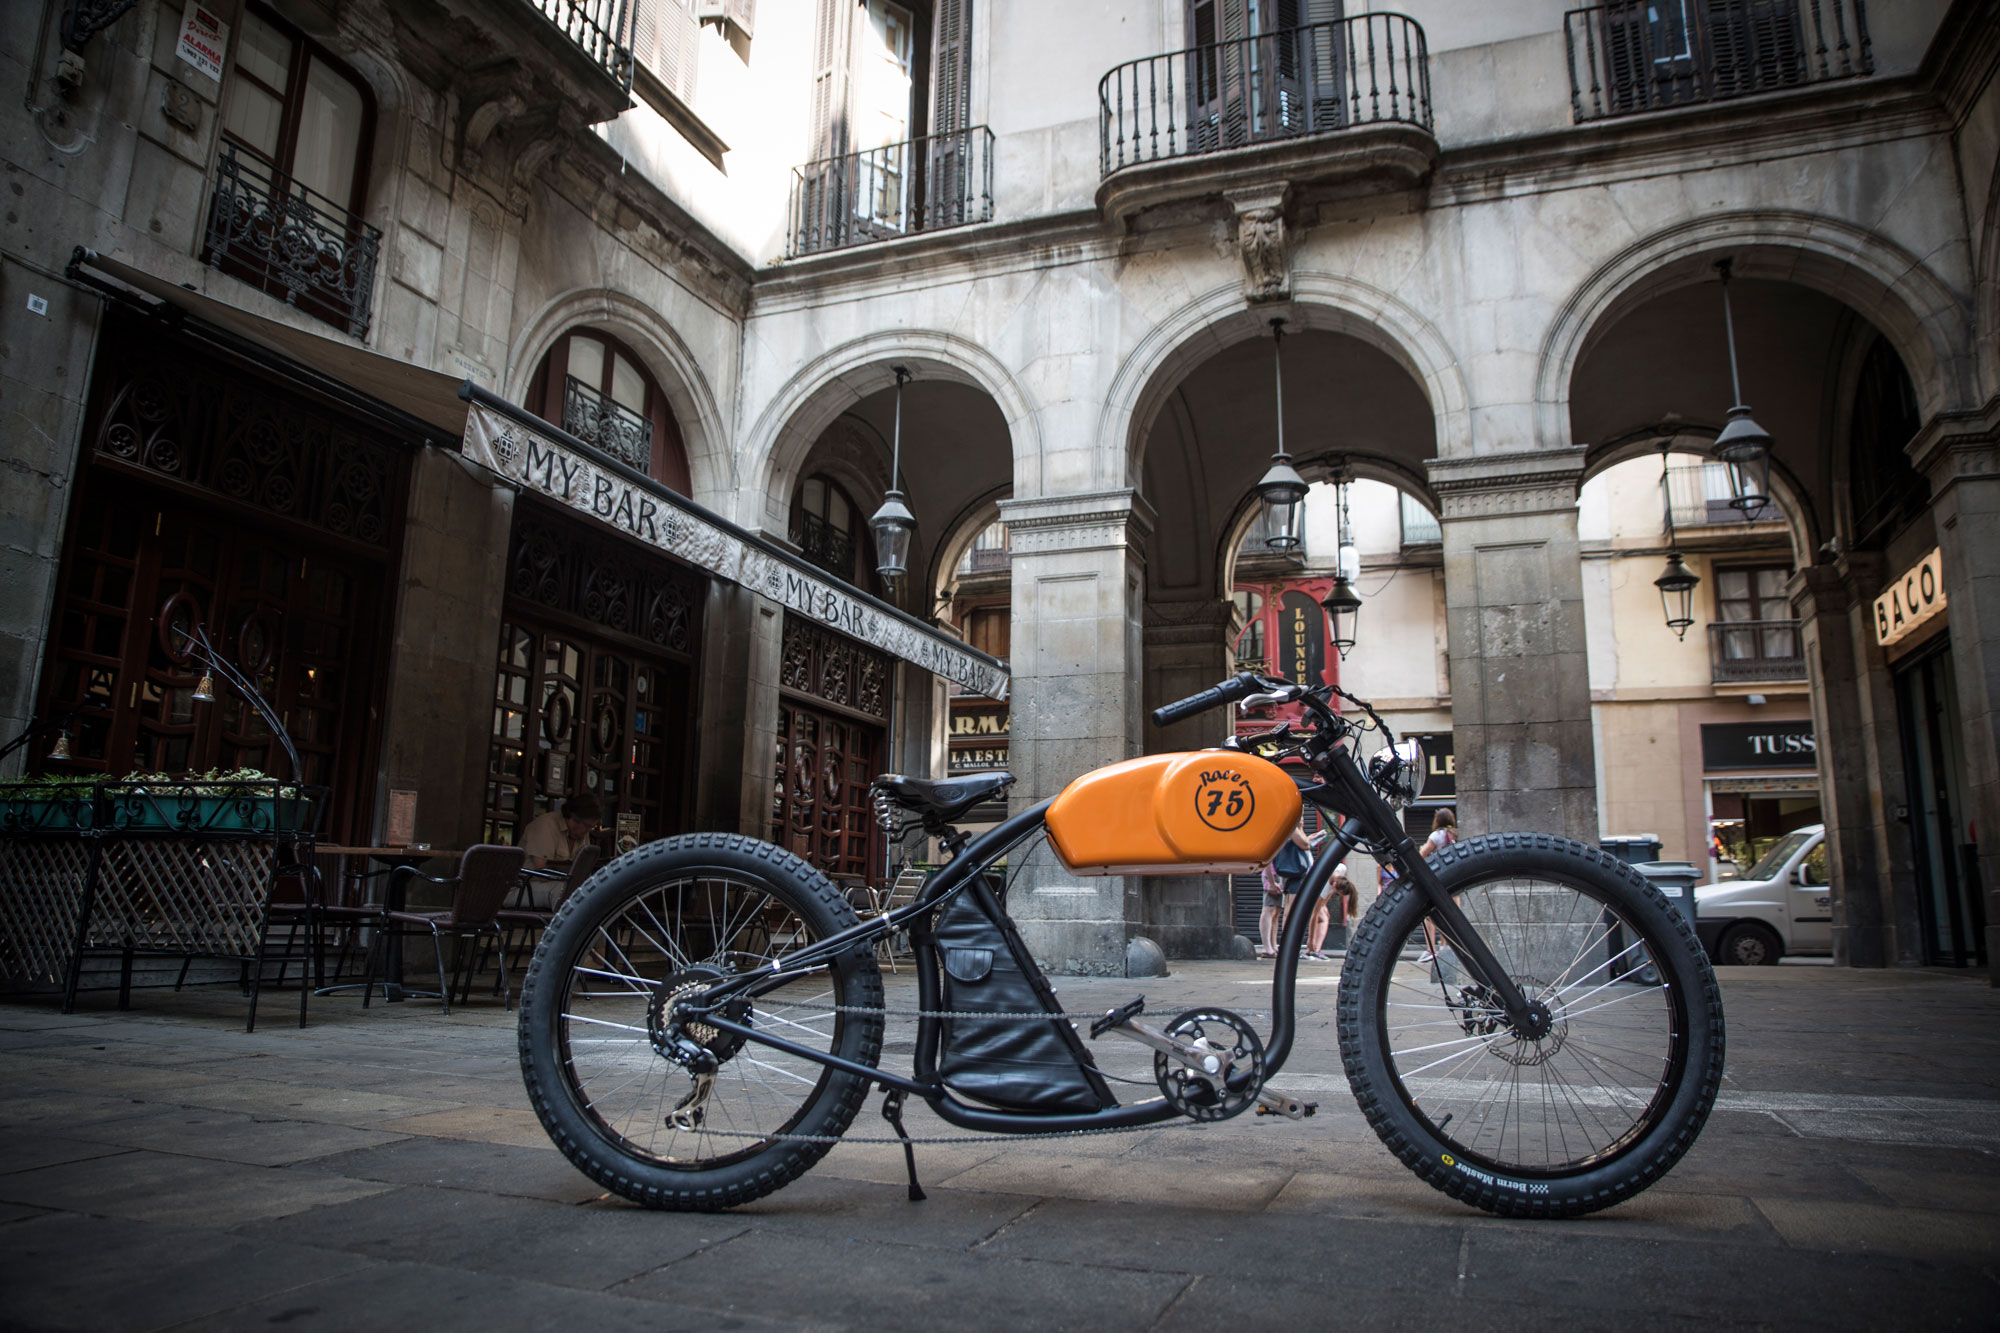 Oto Cycles Launches RaceR Their First E Bike Inspired By The Popular Cafe Racer